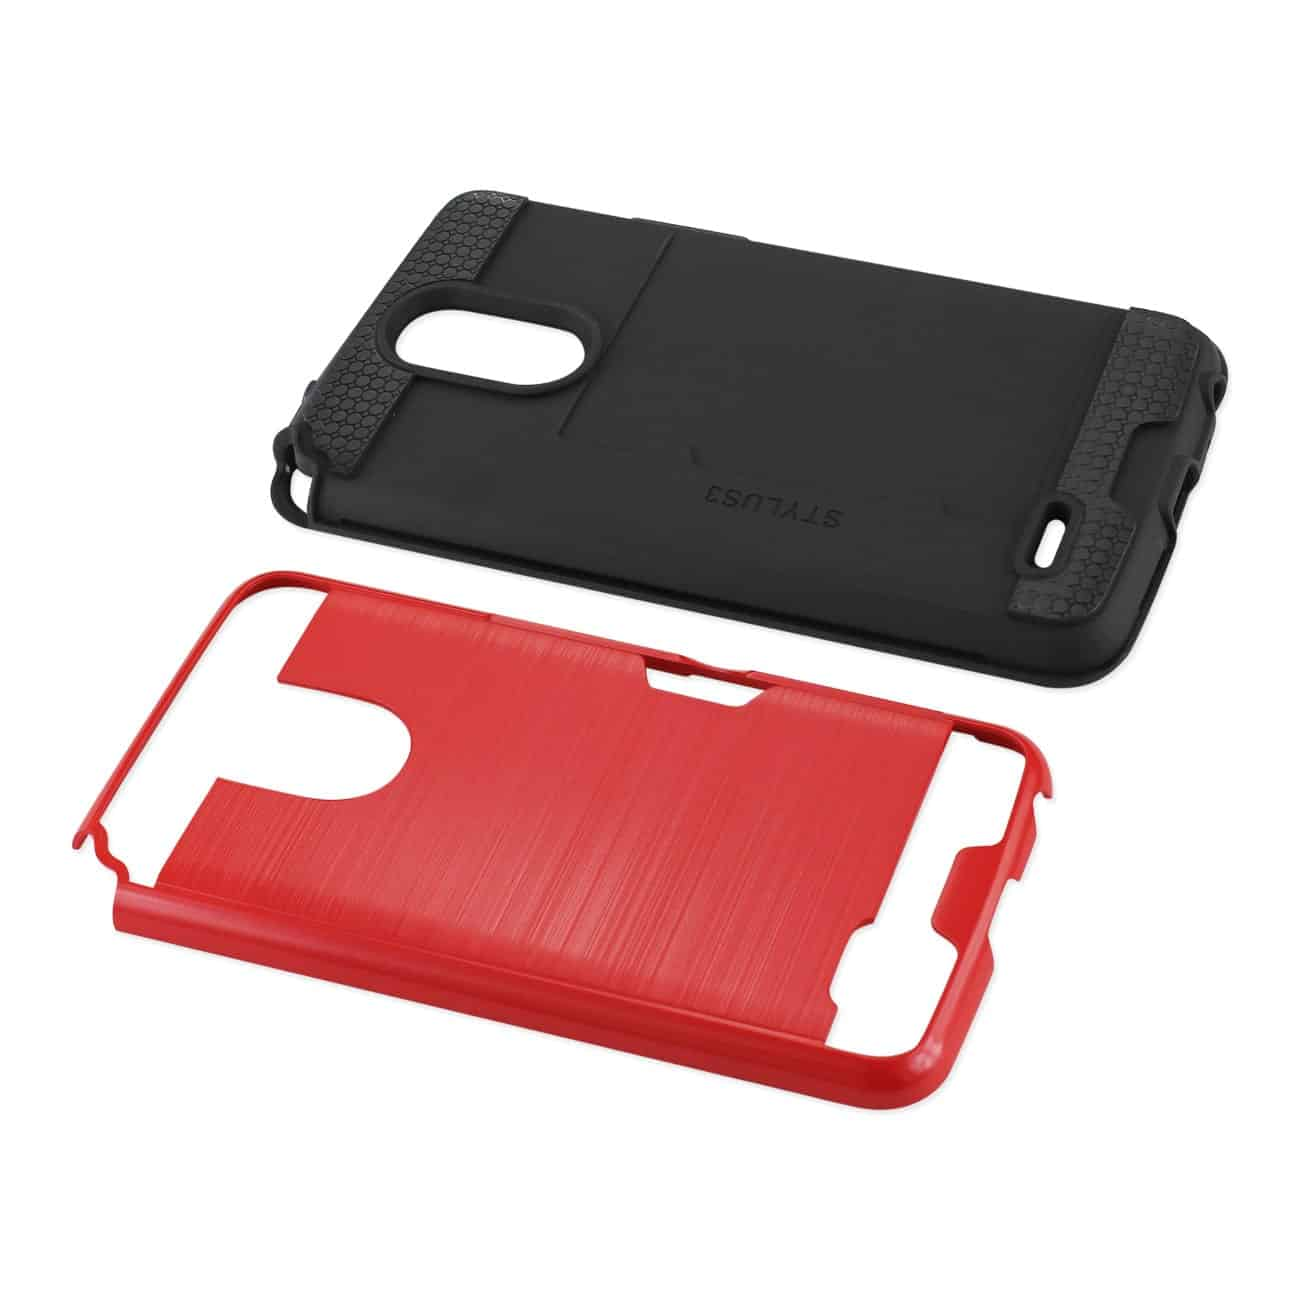 Lg Stylo 3/ Stylus 3 Slim Armor Hybrid Case With Card Holder In Red